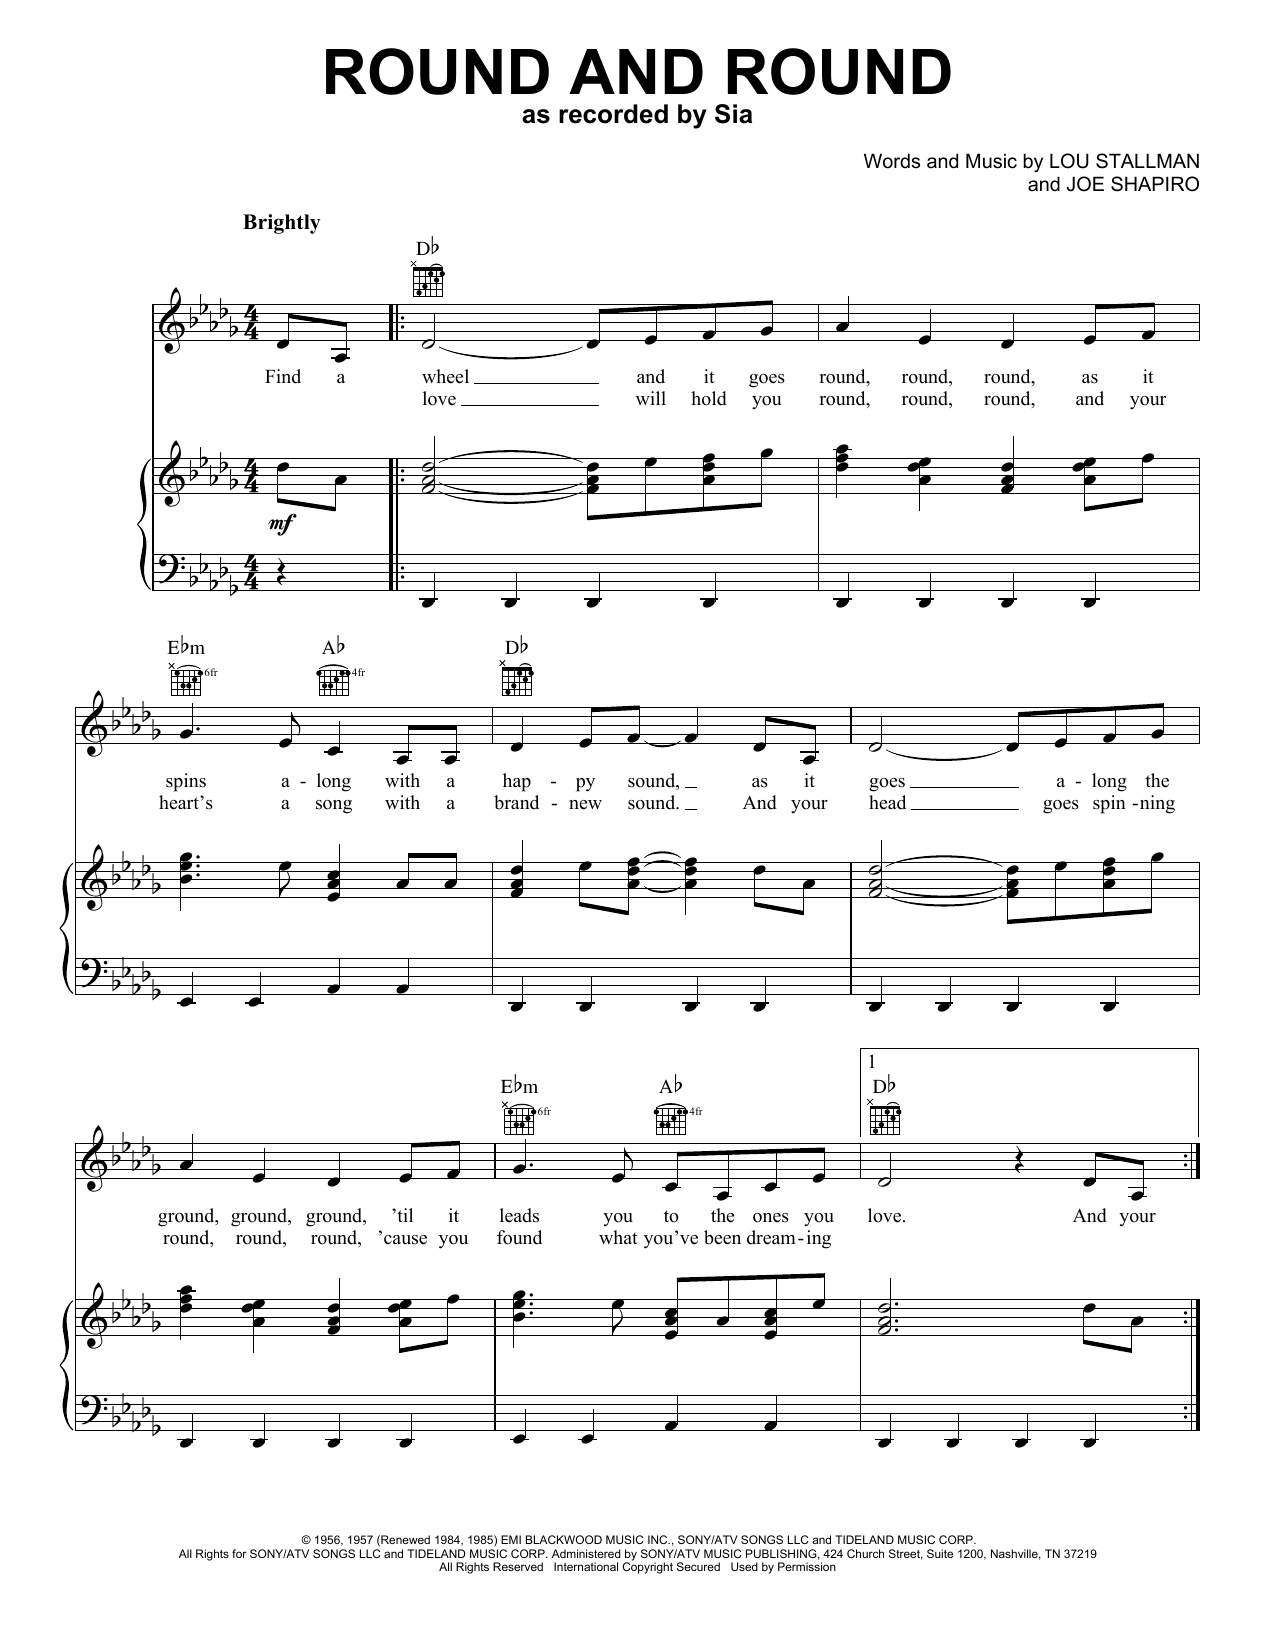 Sia Round And Round sheet music notes and chords. Download Printable PDF.